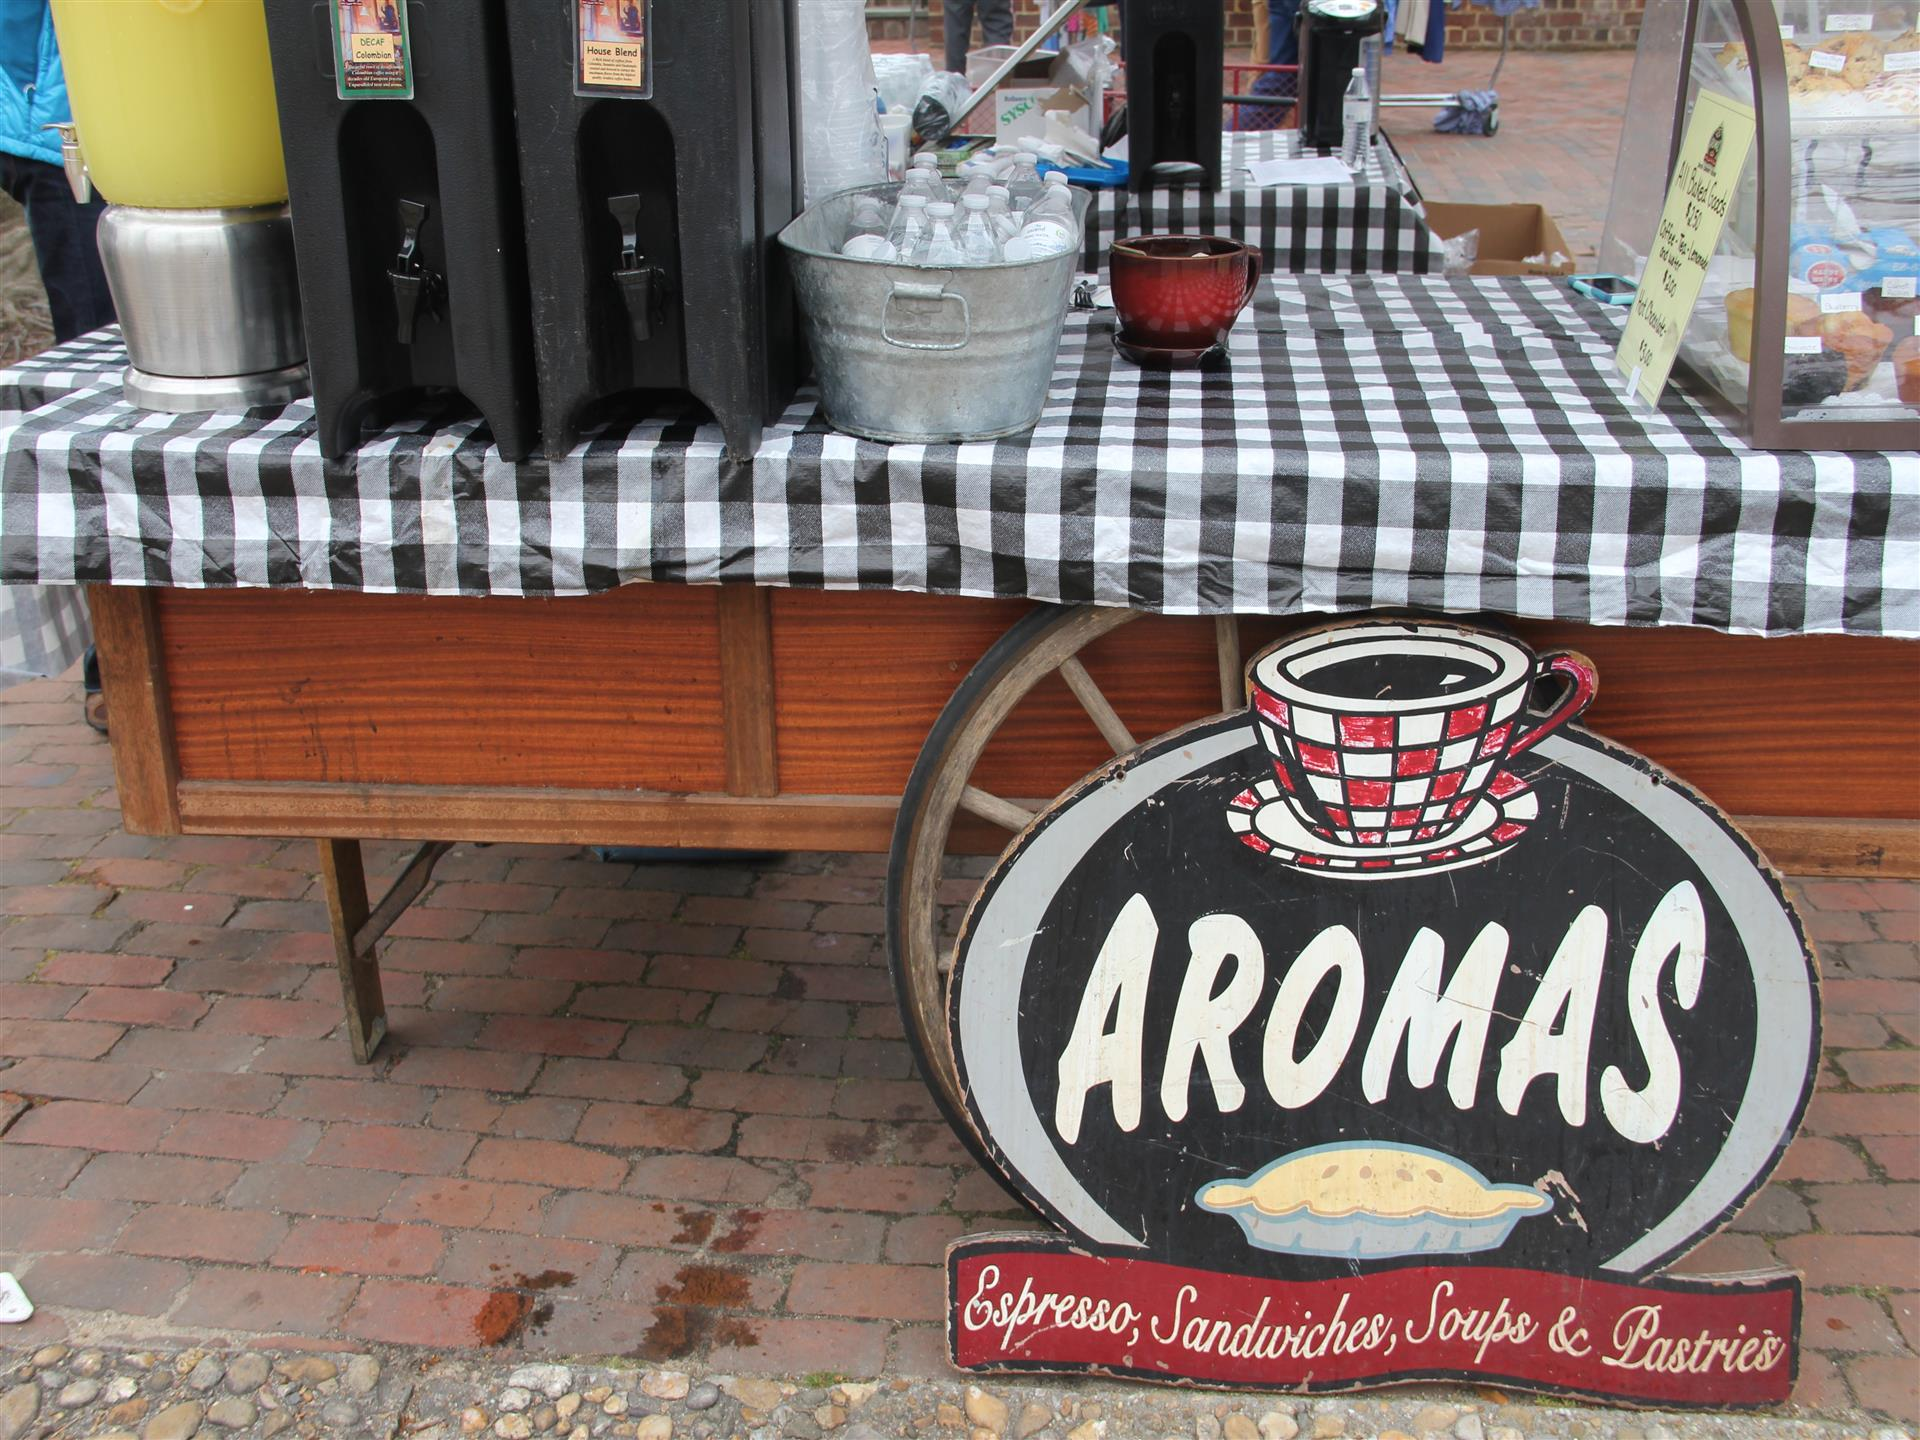 Aromas - Espresso, sandwiches, soups and pastries sign in front of outdoor display.